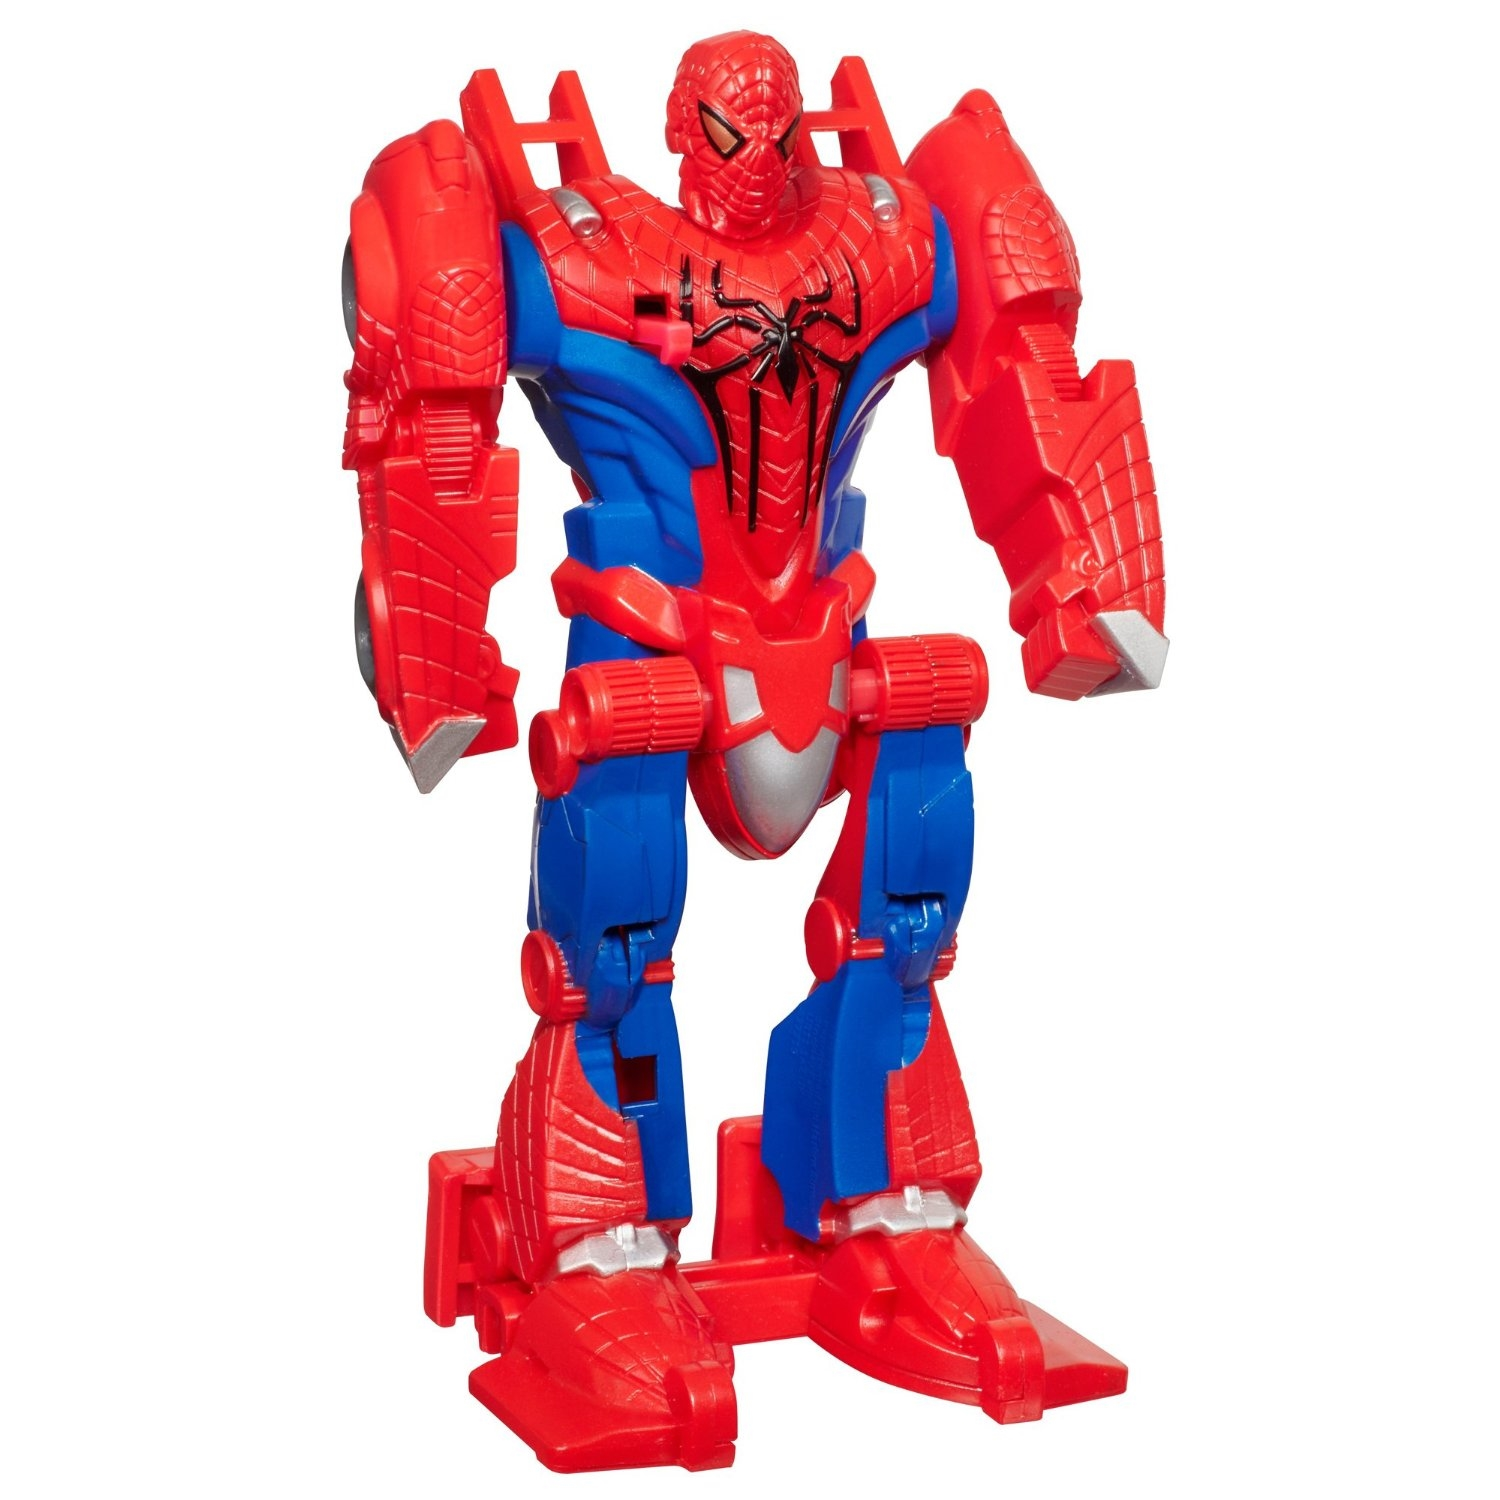 spiderman transformer toys